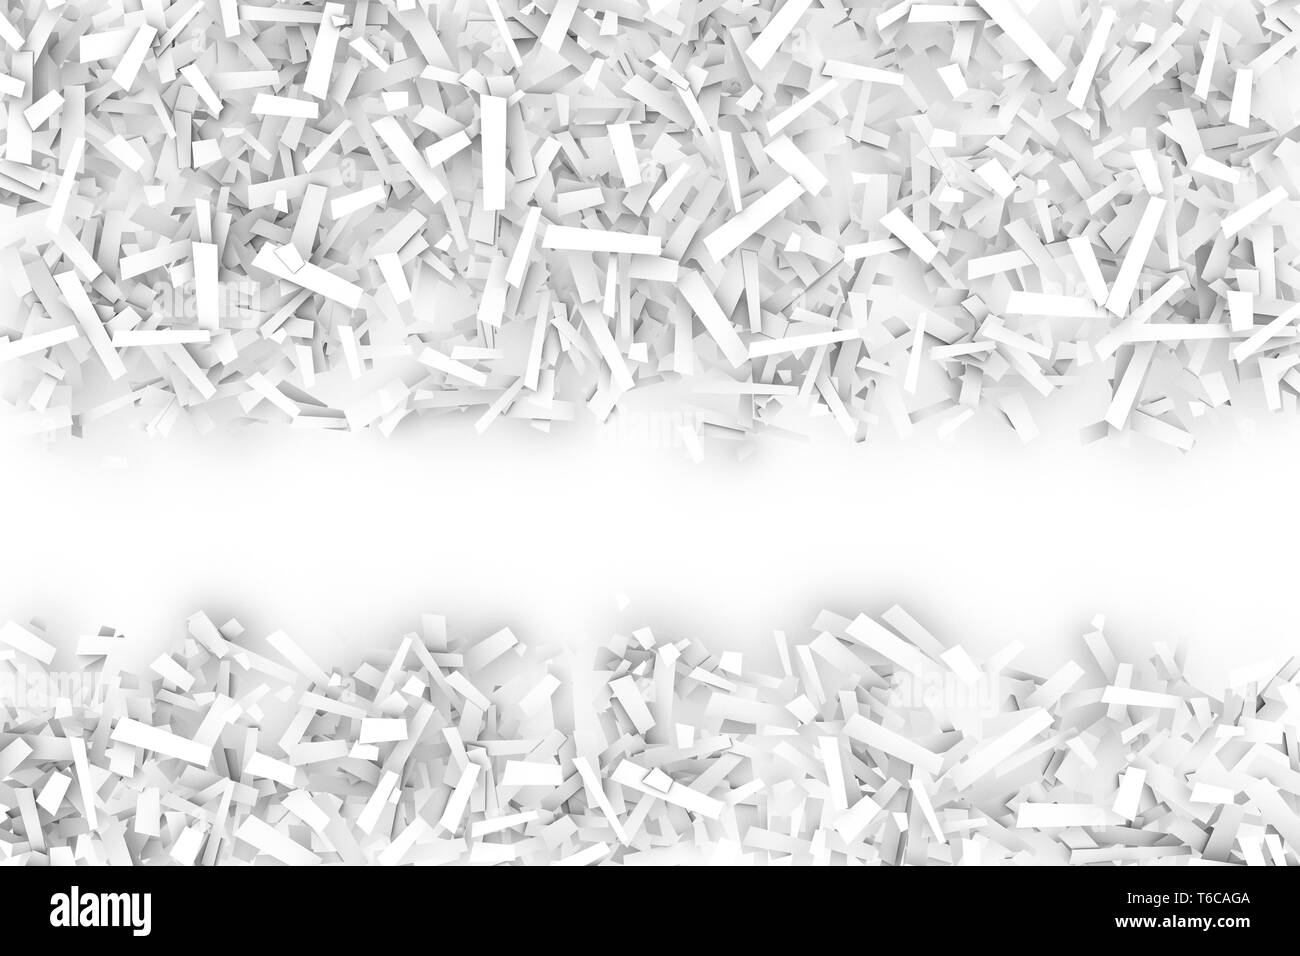 A tangled pile of white geometric confetti shapes on a bright background.  3D illustration.  Space for text lower third. - Stock Image